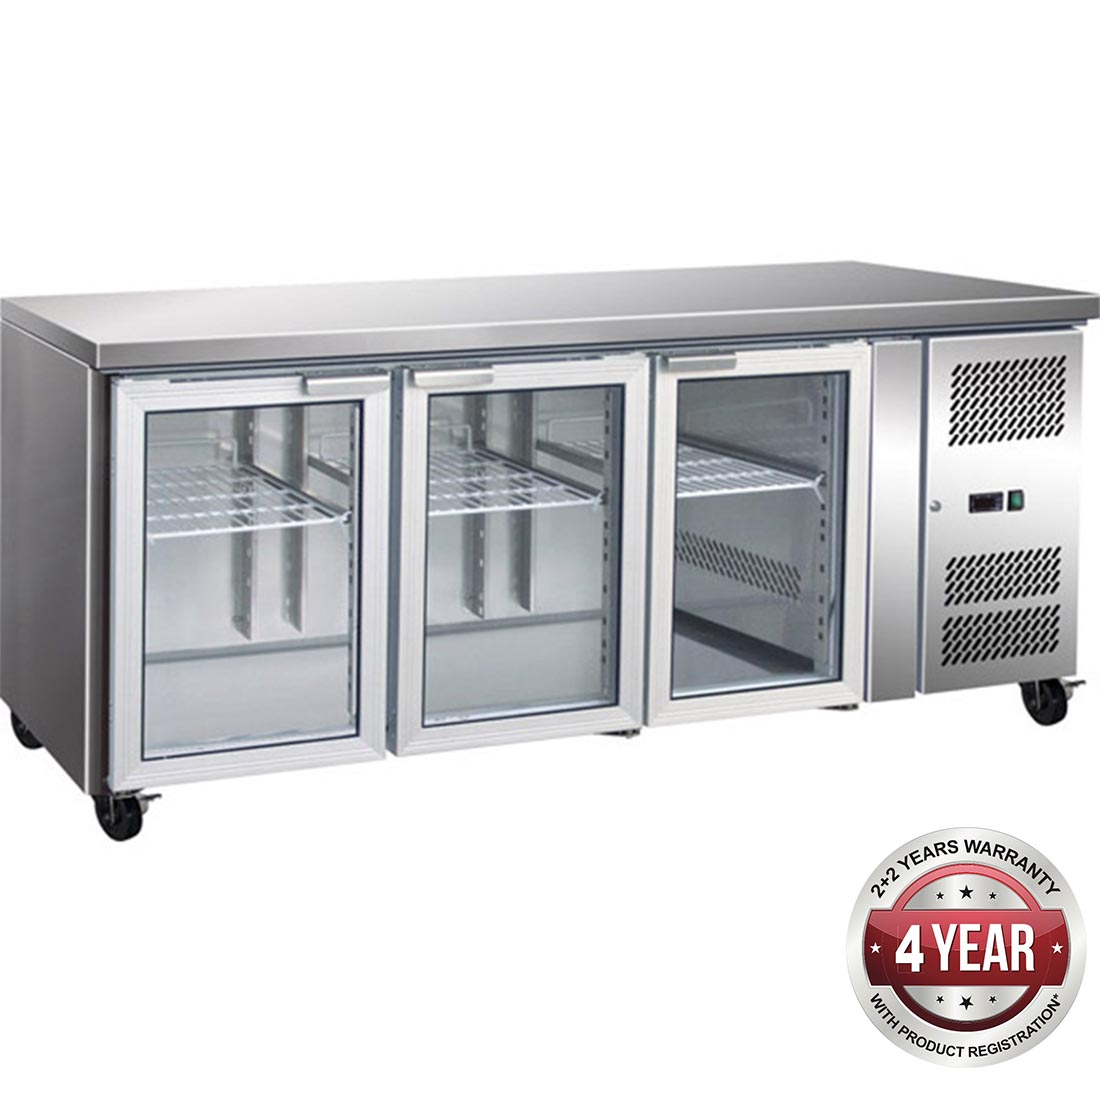 GN3100TNG 3 Glass Door Gastronorm Bench Fridge